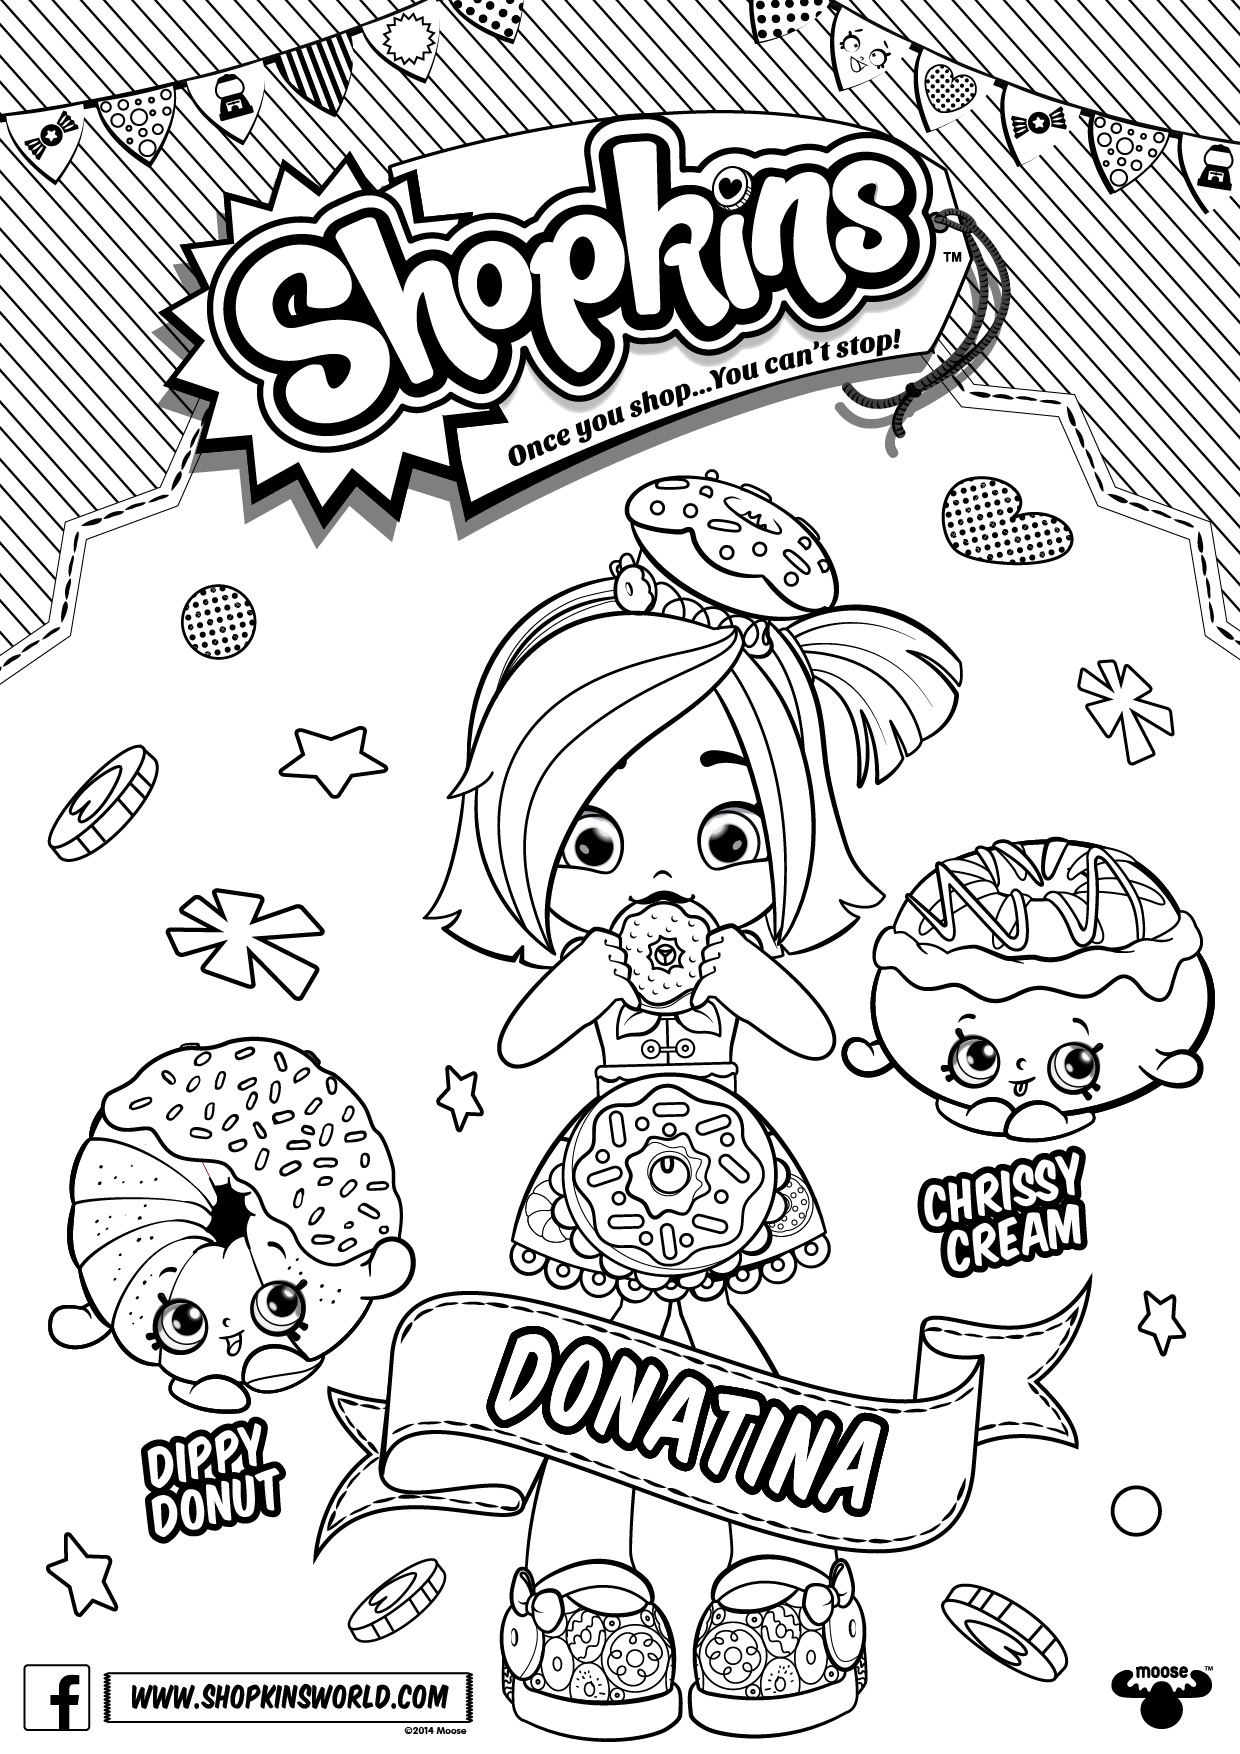 Free Shoppies Coloring Pages Line Drawings printable